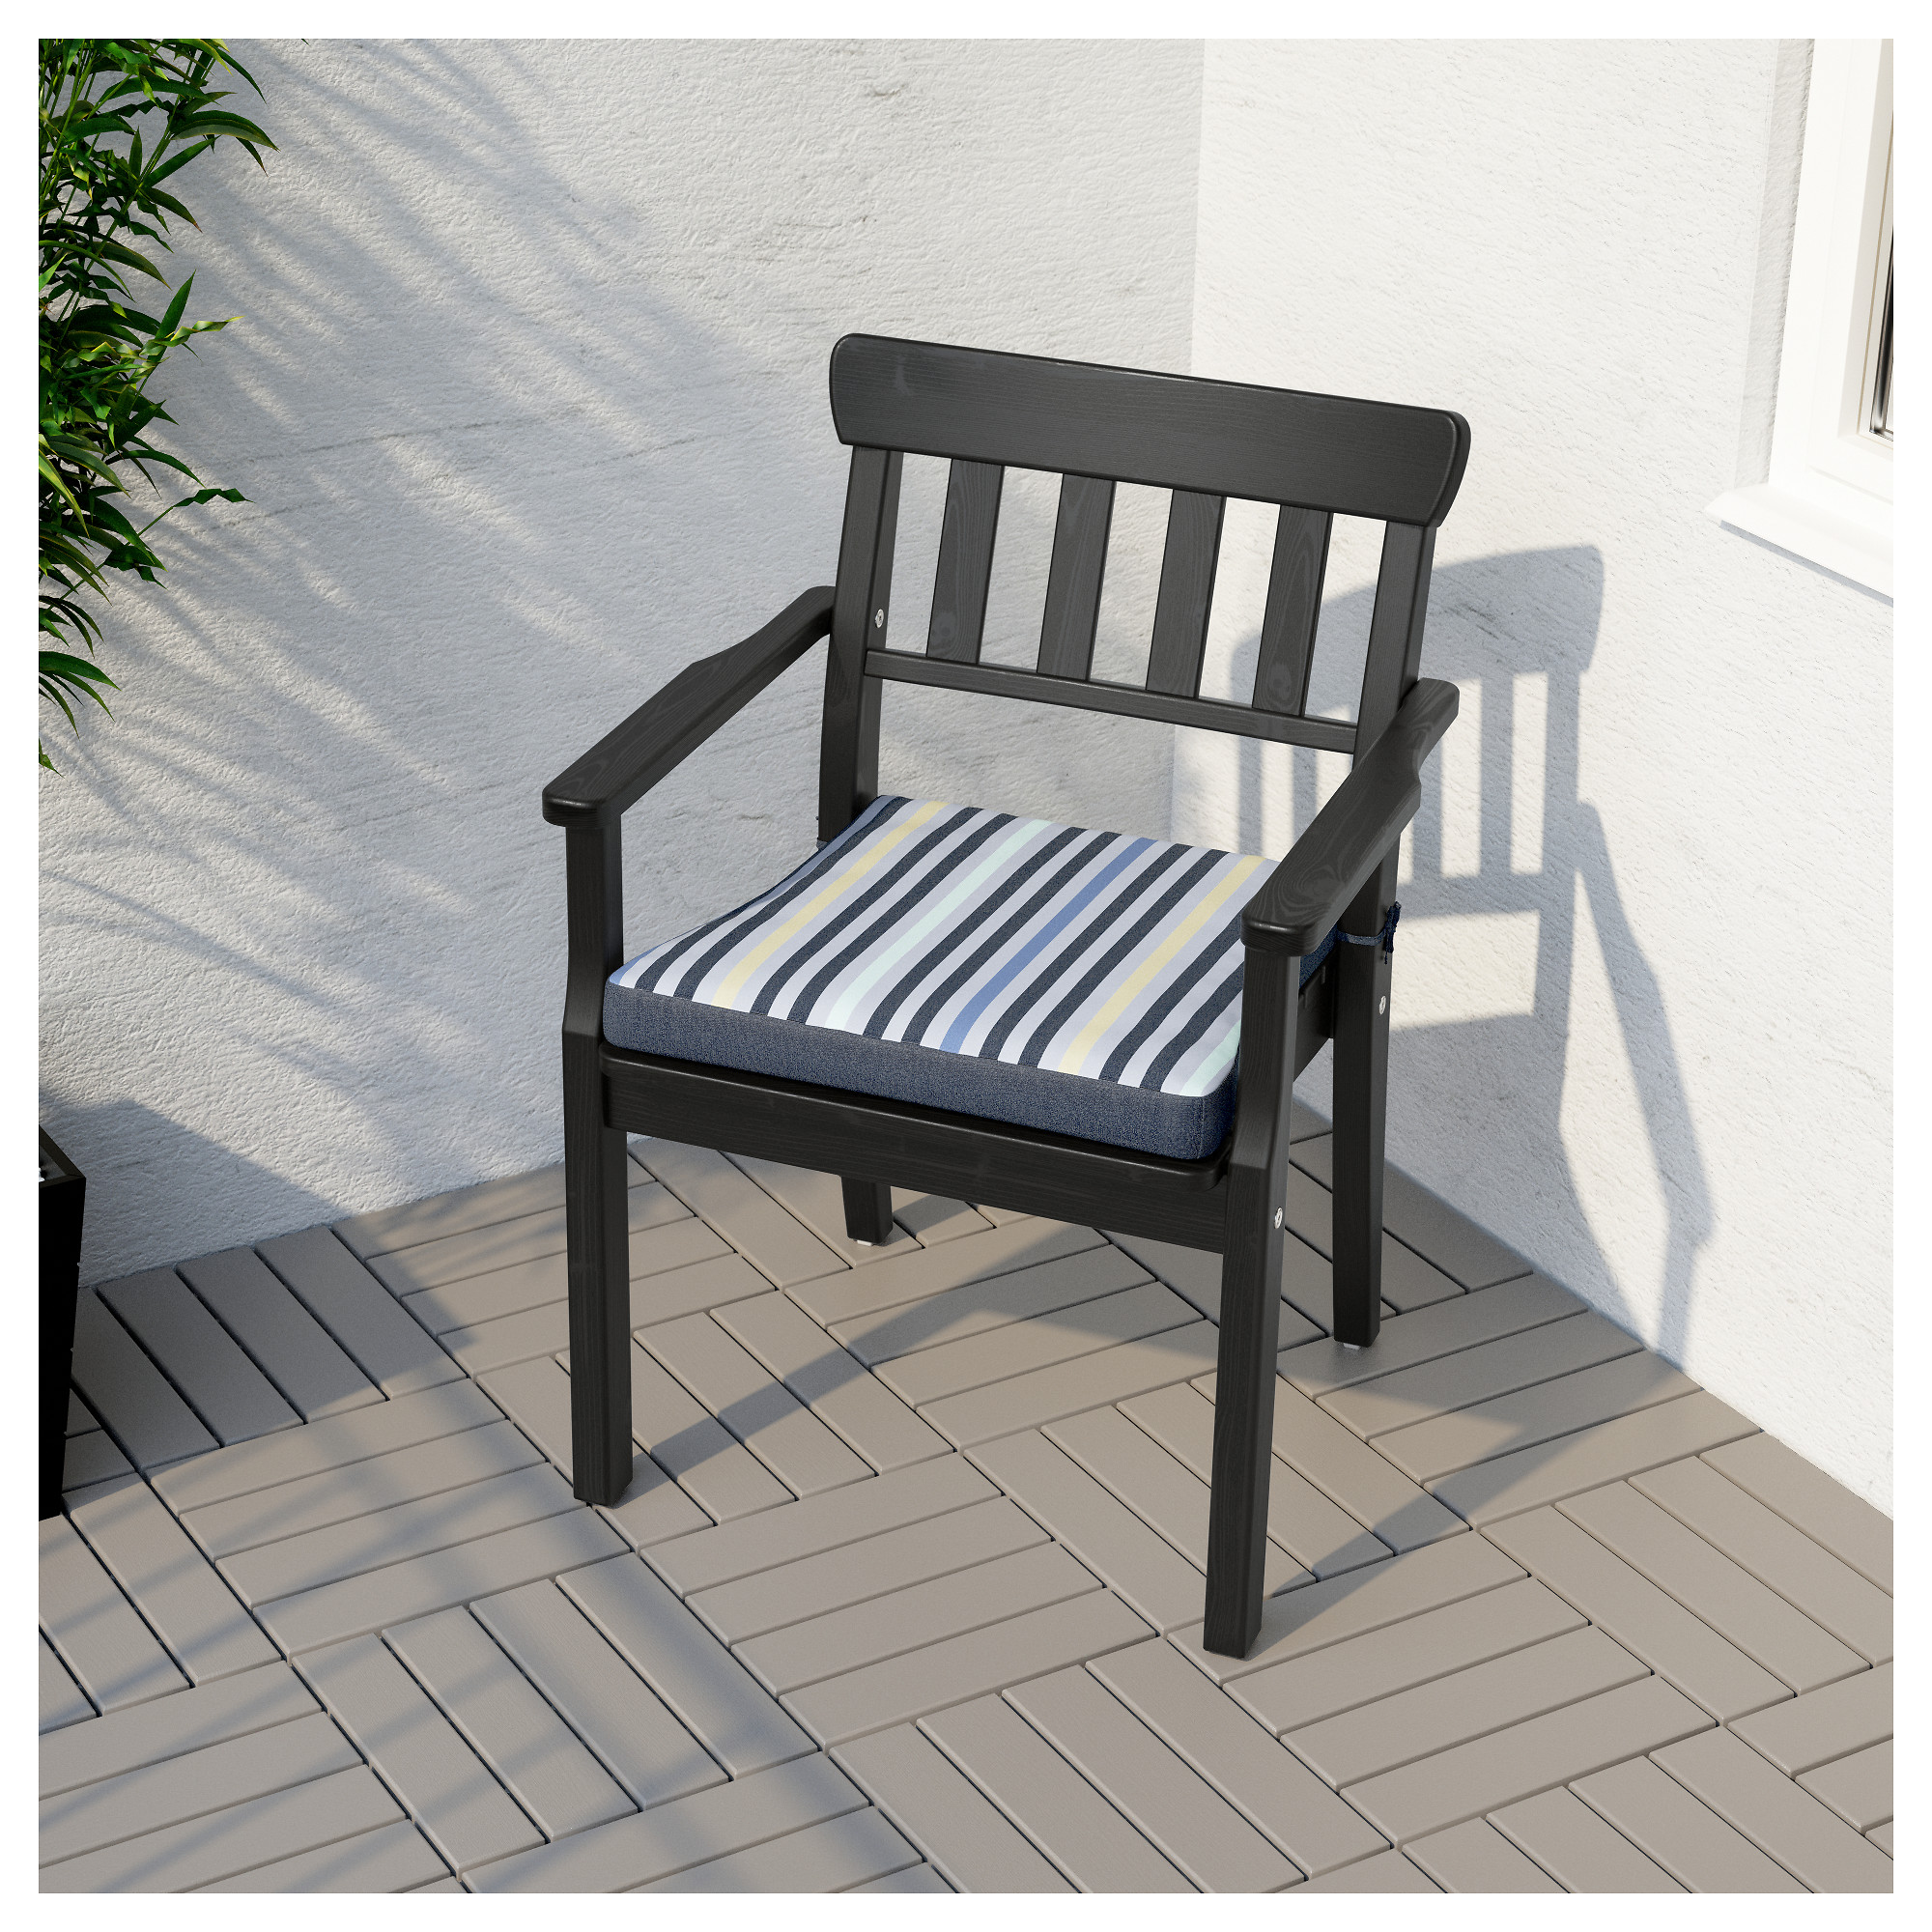 a ngsa chair with armrests outdoor ikea